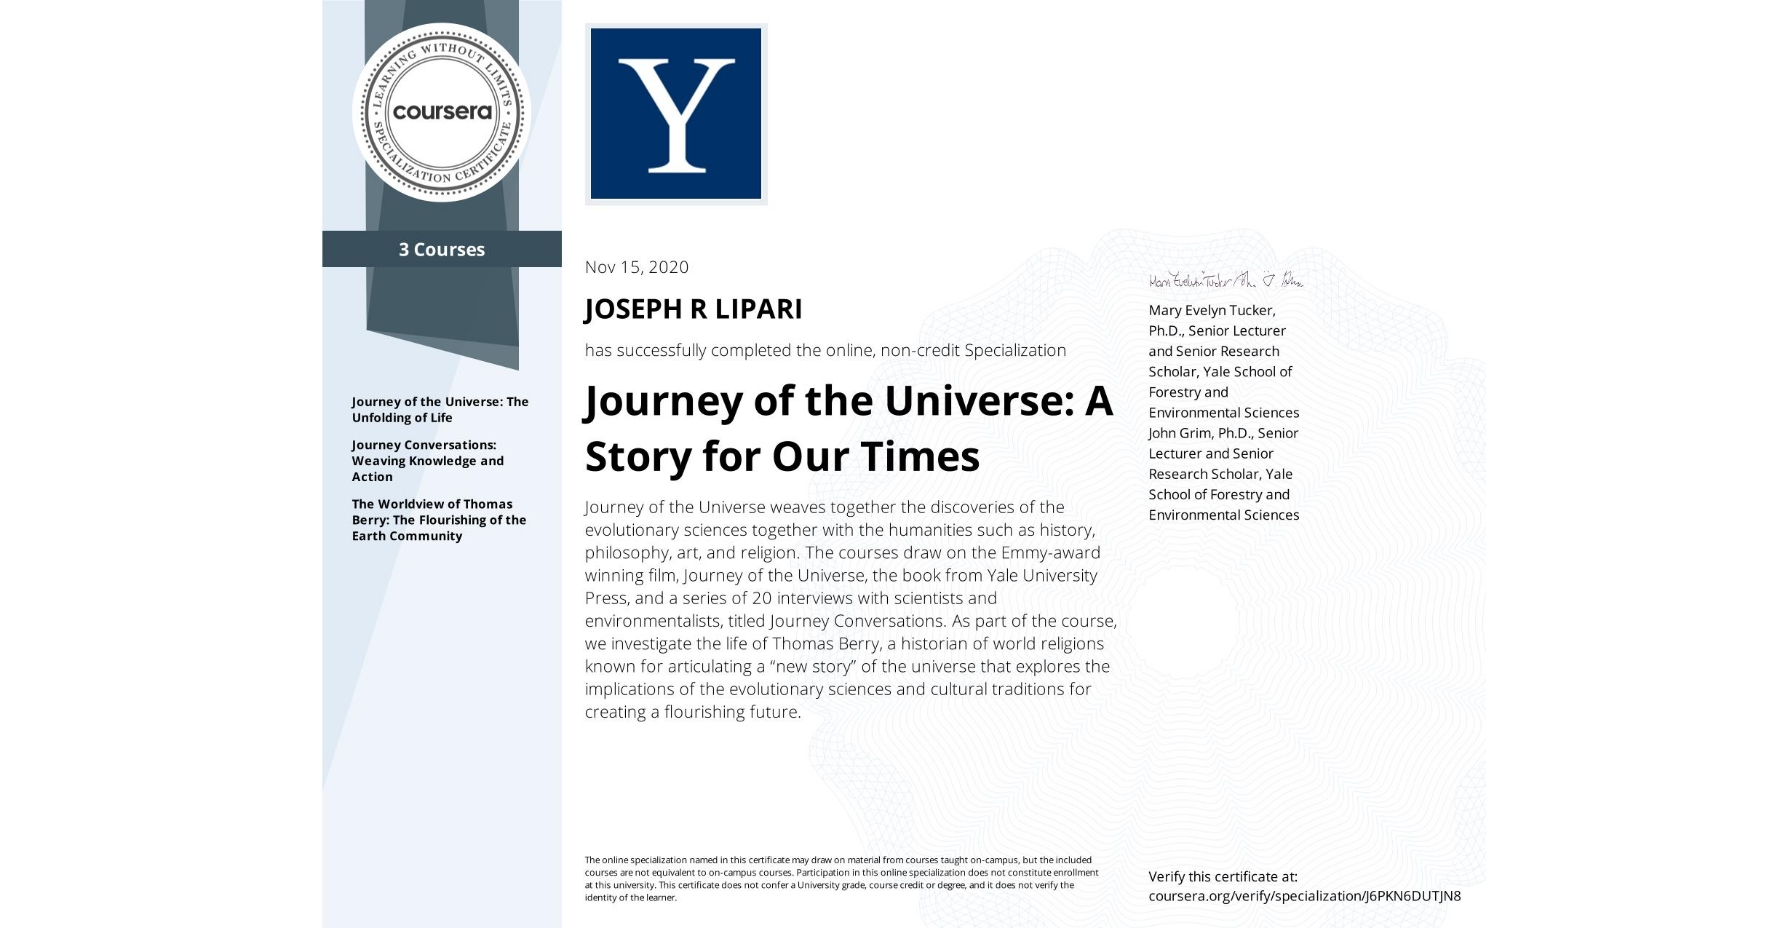 """View certificate for JOSEPH R  LIPARI, Journey of the Universe: A Story for Our Times, offered through Coursera. Journey of the Universe weaves together the discoveries of the evolutionary sciences together with the humanities such as history, philosophy, art, and religion. The courses draw on the Emmy-award winning film, Journey of the Universe, the book from Yale University Press, and a series of 20 interviews with scientists and environmentalists, titled Journey Conversations. As part of the course, we investigate the life of Thomas Berry, a historian of world religions known for articulating a """"new story"""" of the universe that explores the implications of the evolutionary sciences and cultural traditions for creating a flourishing future."""